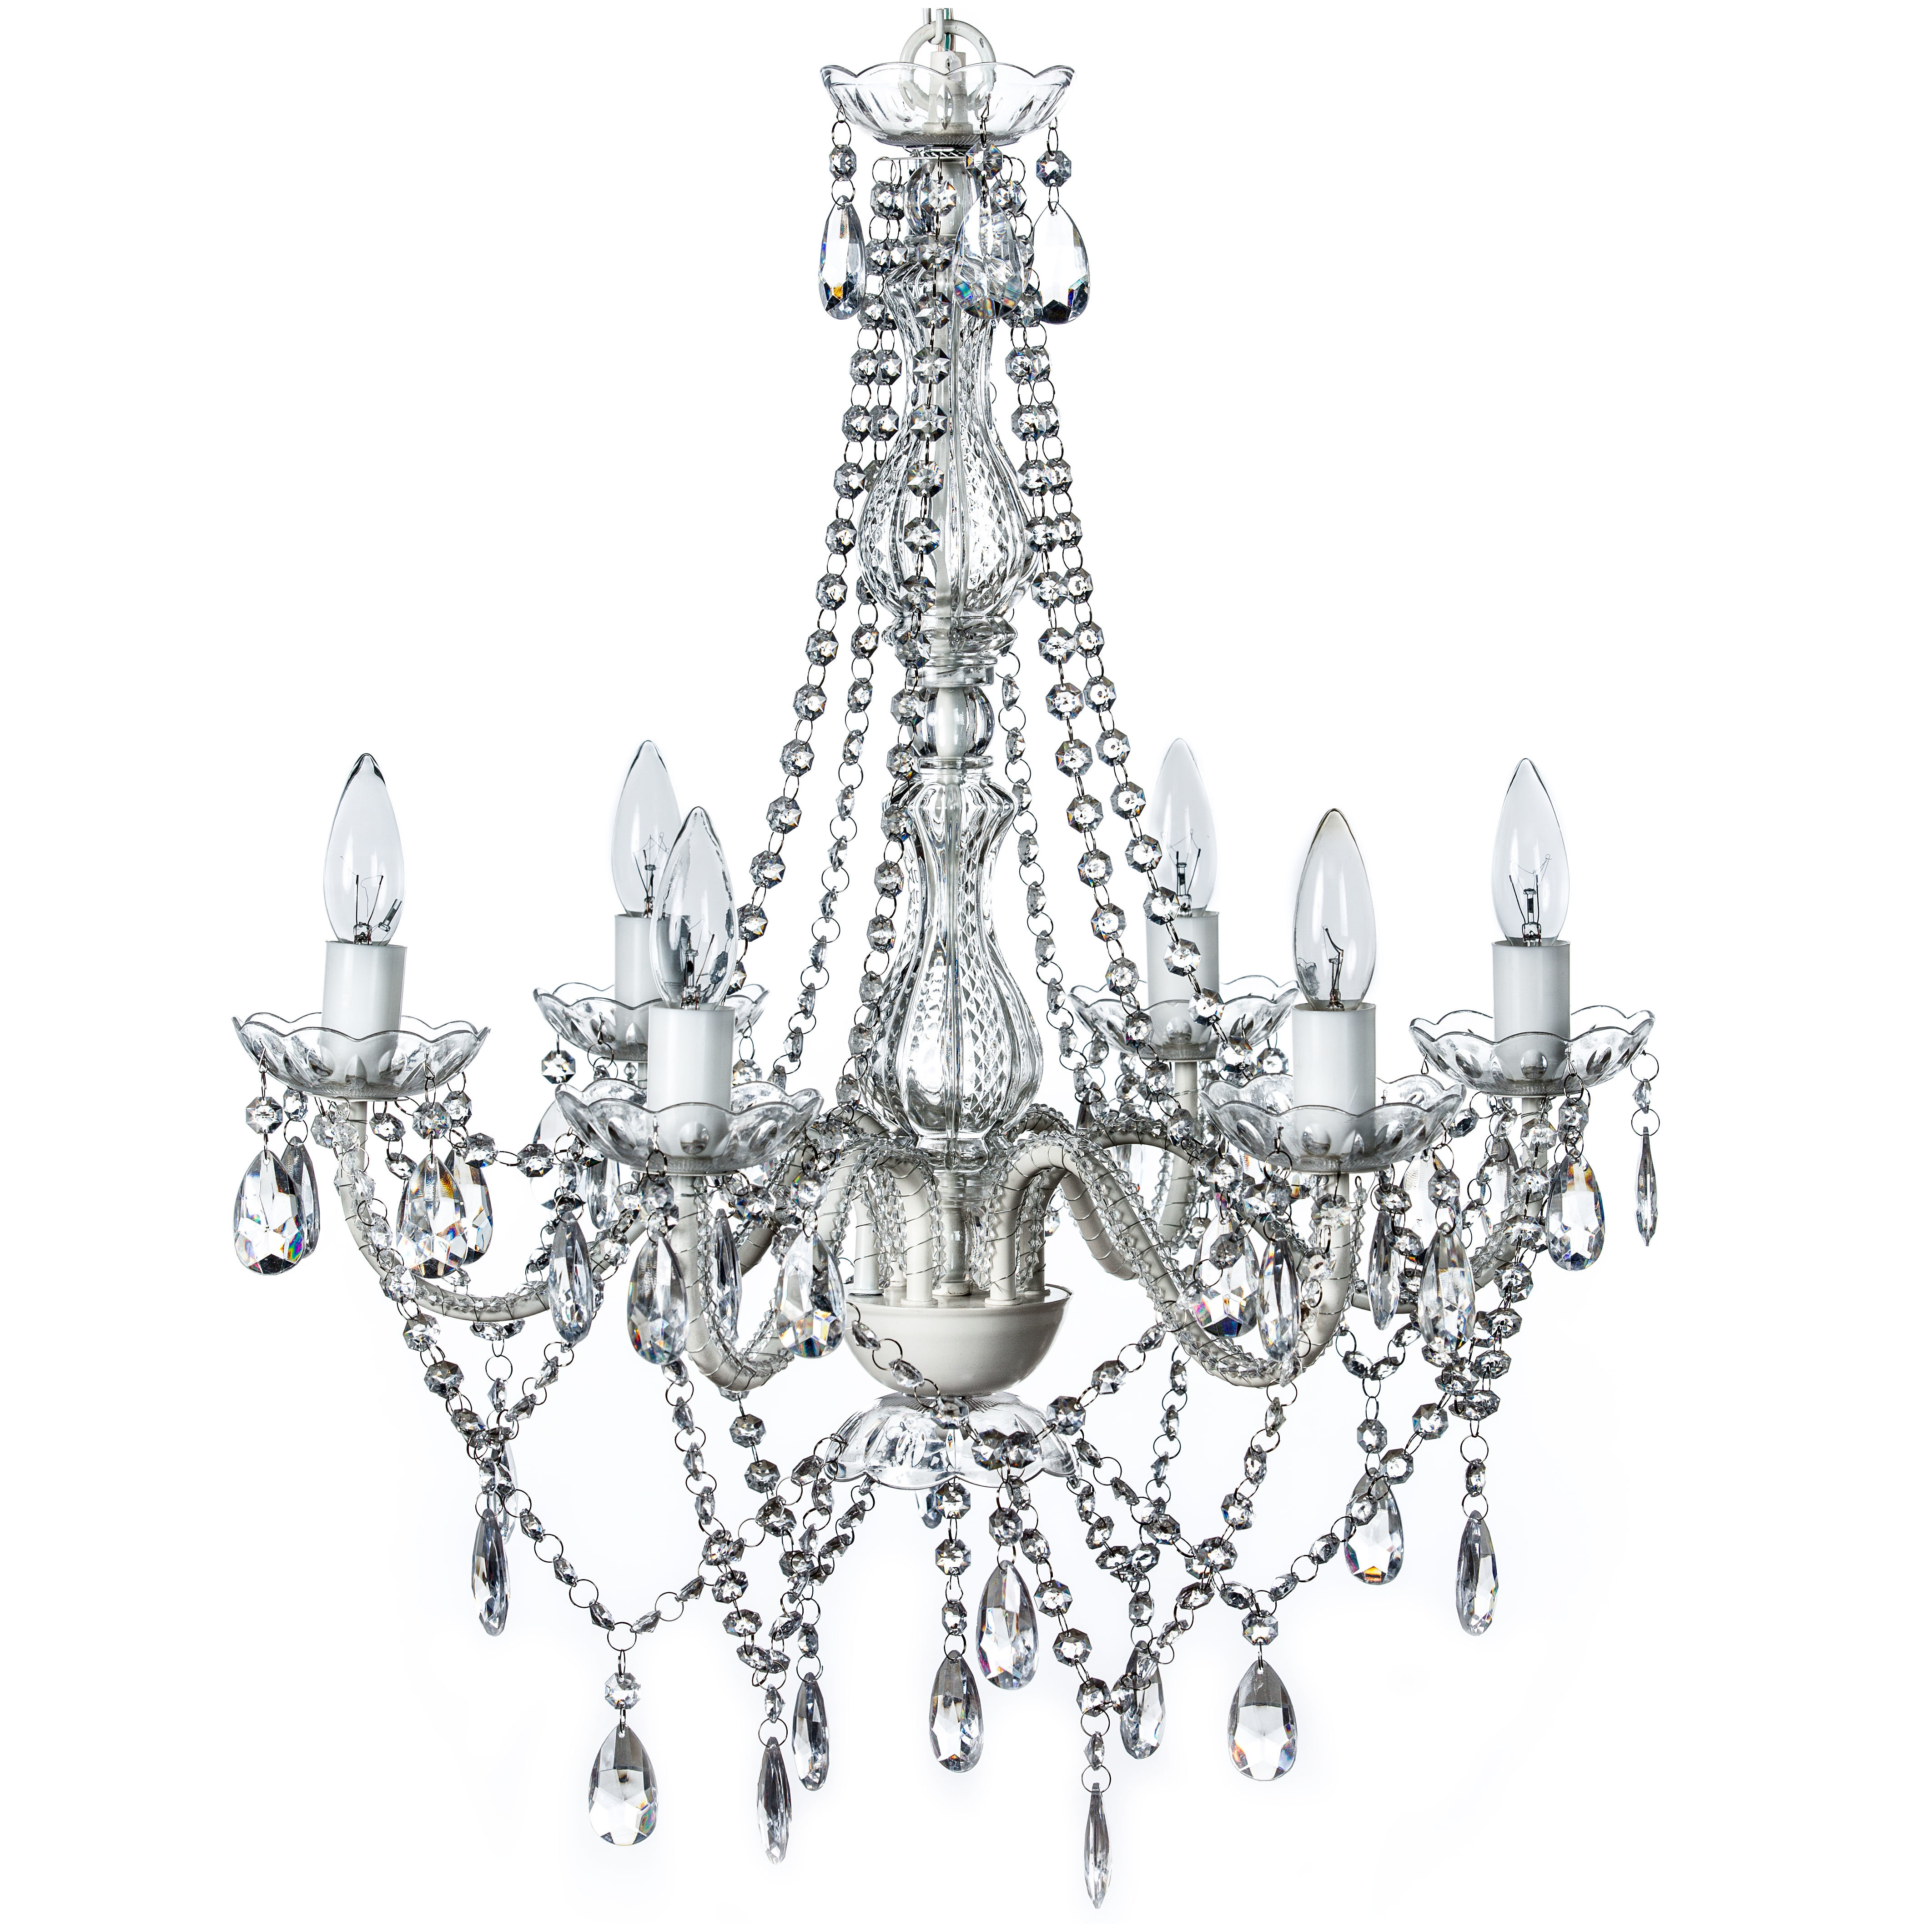 Bolick Candle Style Chandelier Regarding Aldora 4 Light Candle Style Chandeliers (View 18 of 30)